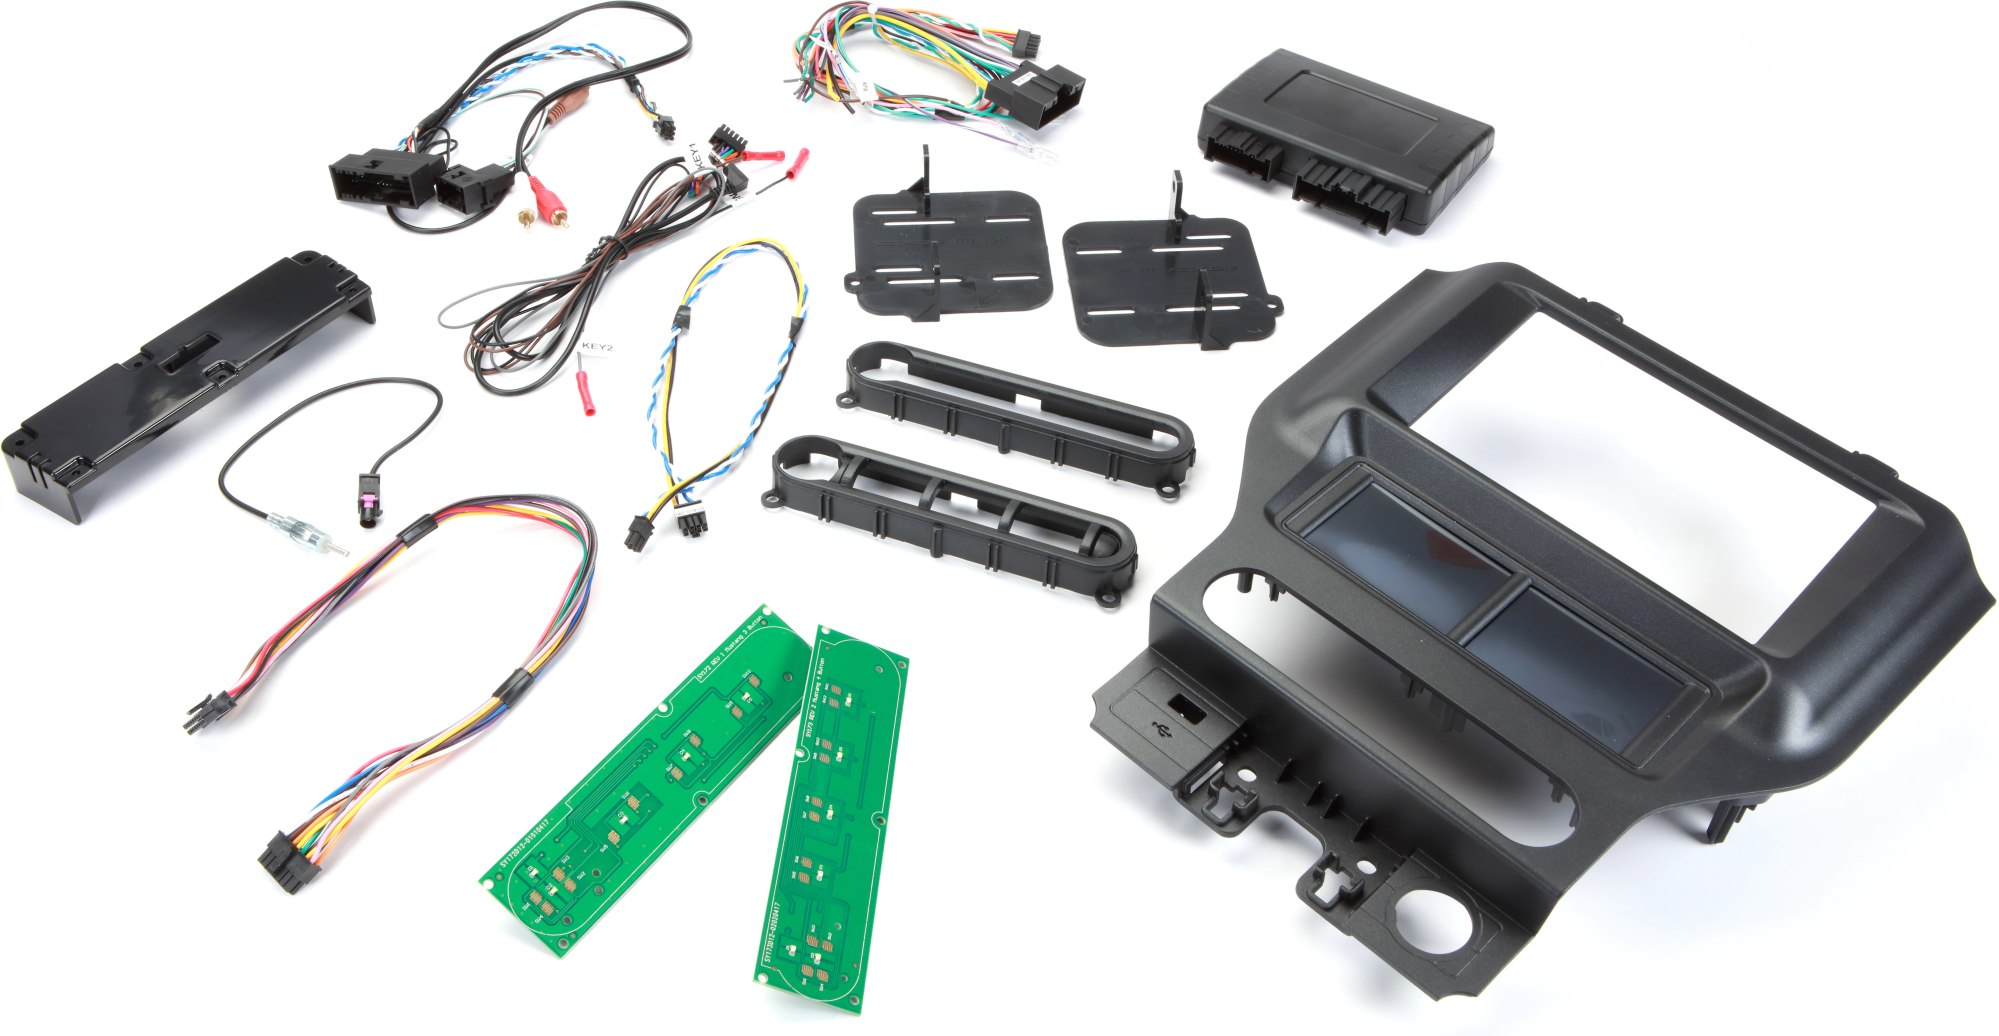 hight resolution of scosche itcfd05b dash and wiring kit black install and connect a car stereo in select 2015 up ford mustangs retains steering wheel controls aux input